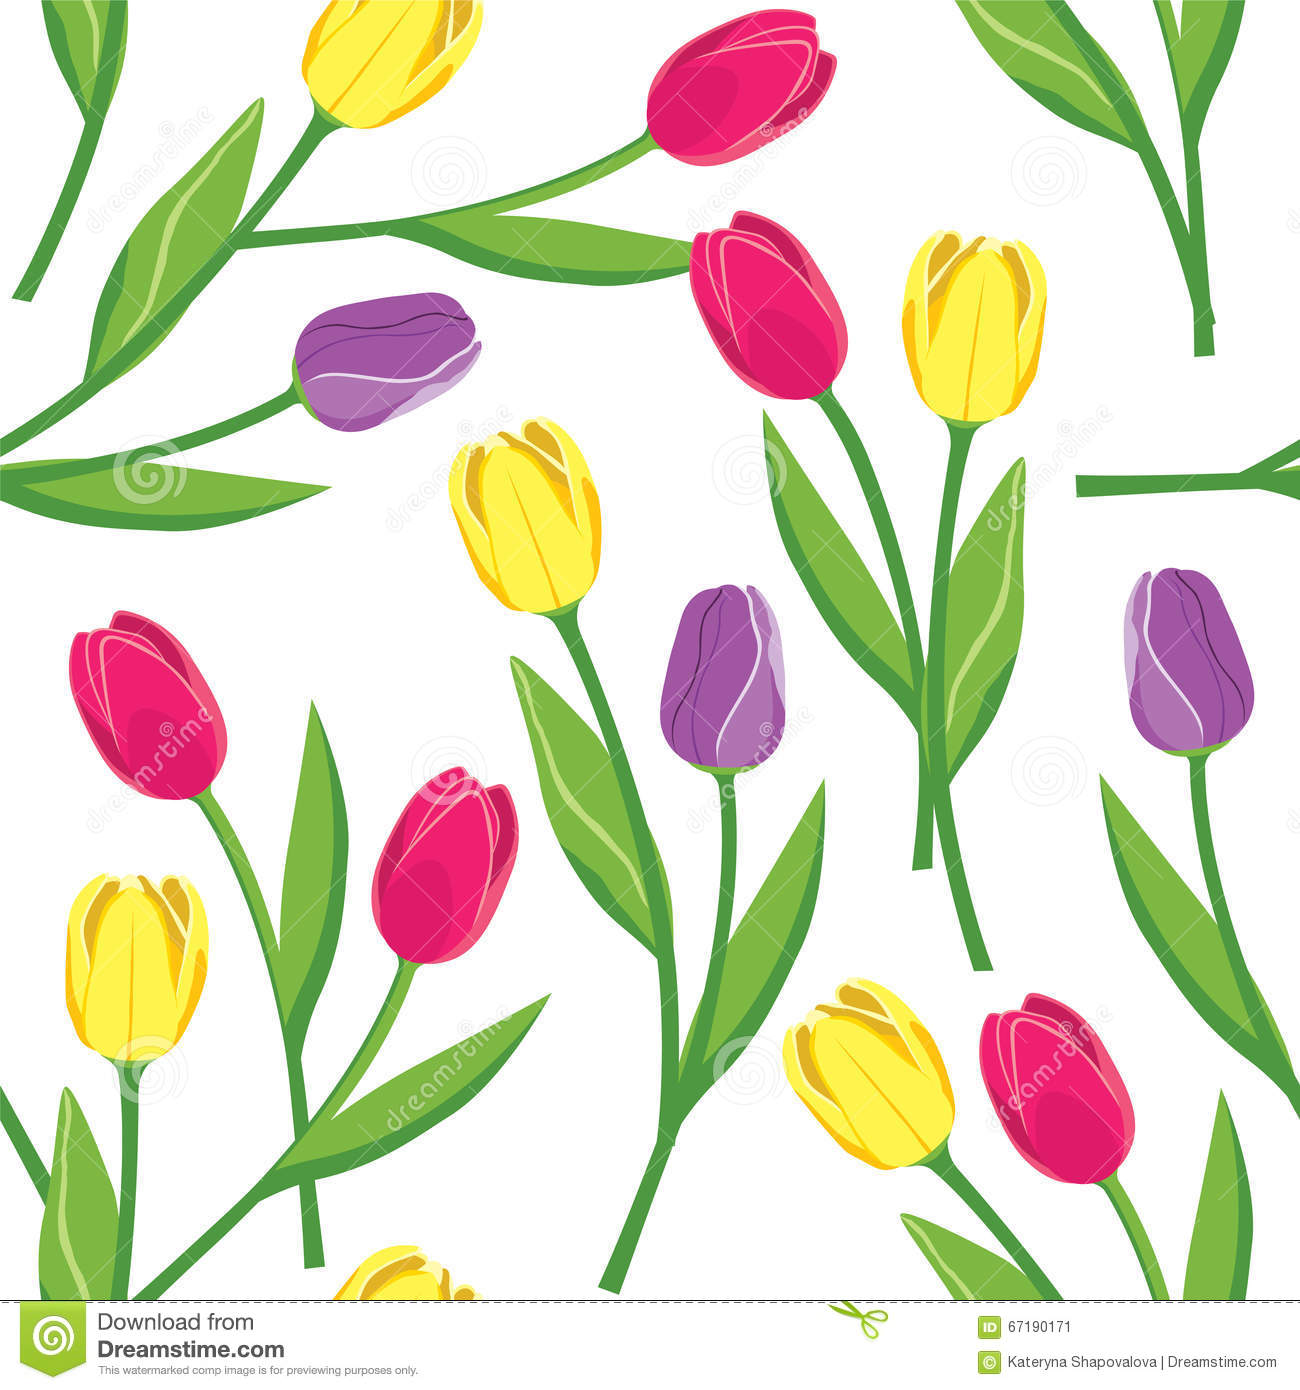 Realistic Tulips Seamless Pattern Royalty-Free Stock Image ...